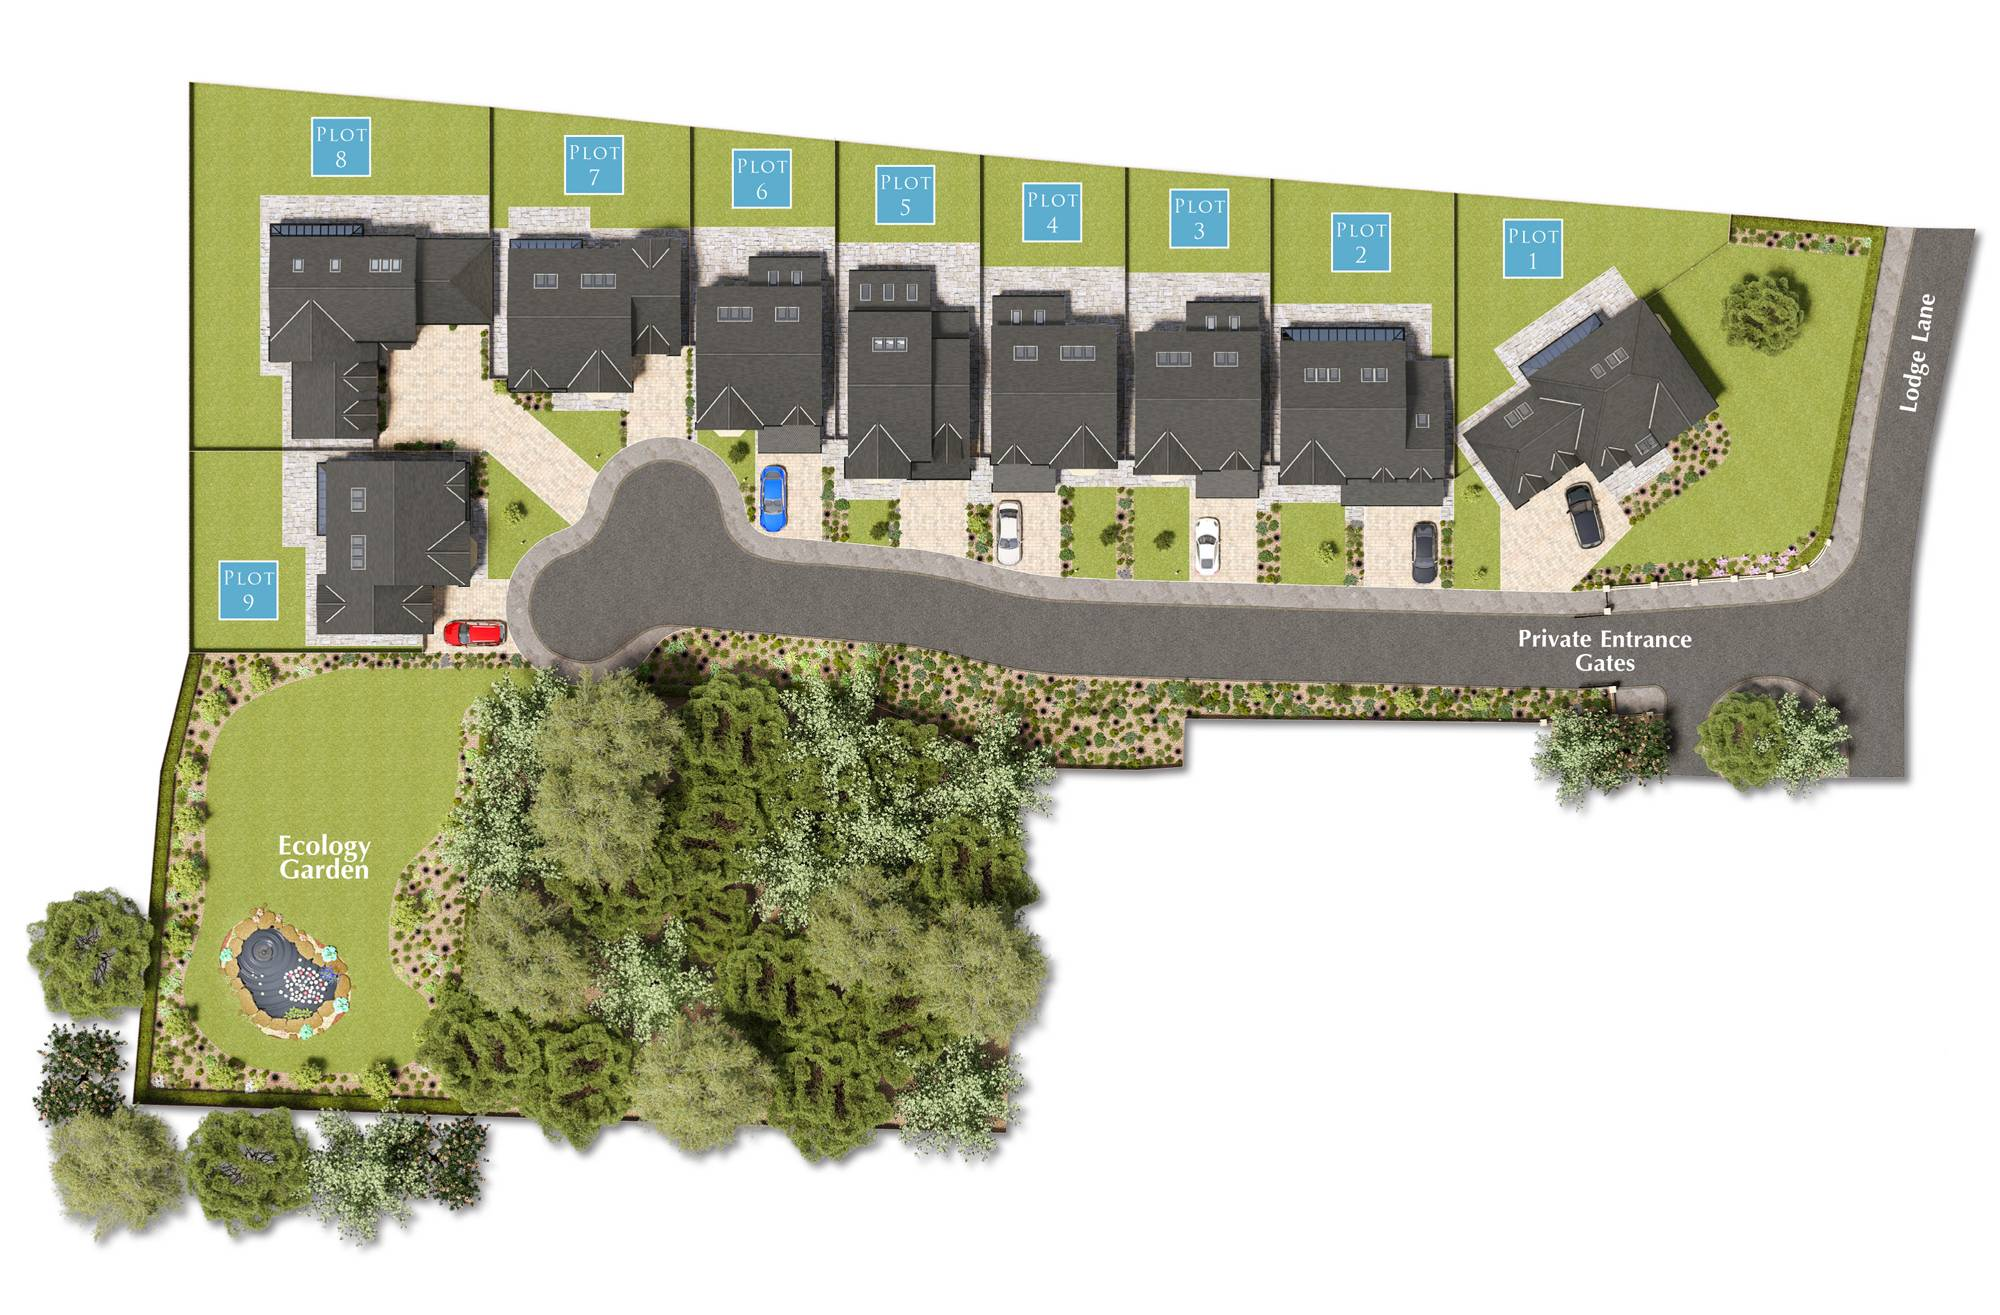 Sitemap for Wyre Grange